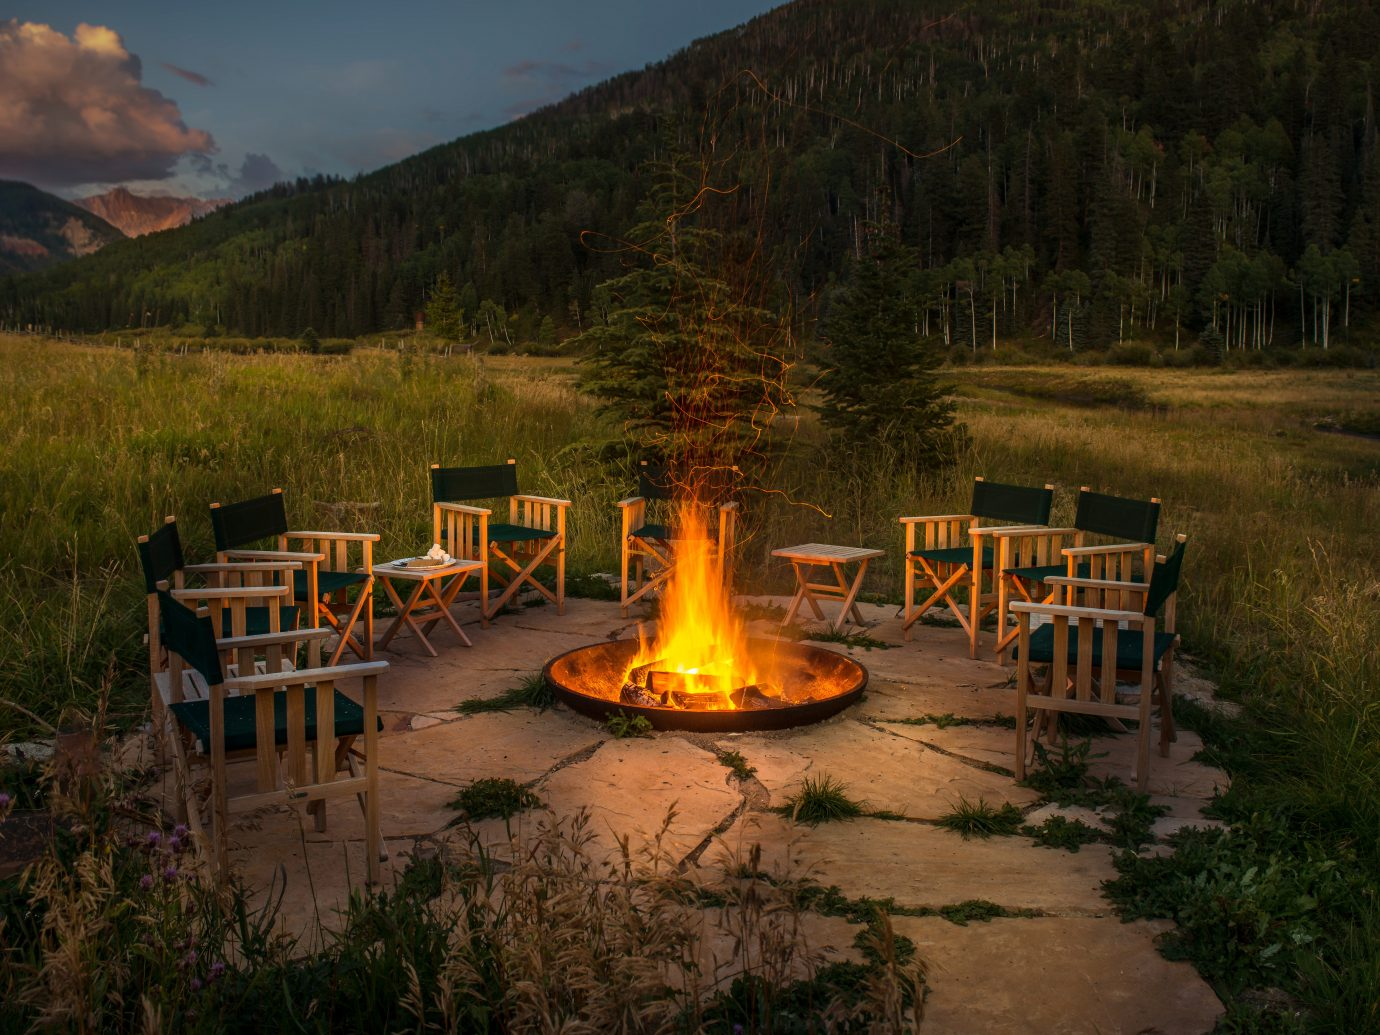 Adventure Country Forest Glamping Grounds Mountains Outdoors + Adventure Rustic Weekend Getaways Wellness outdoor grass sky mountain wilderness yellow morning Nature evening reflection park campfire fire autumn surrounded